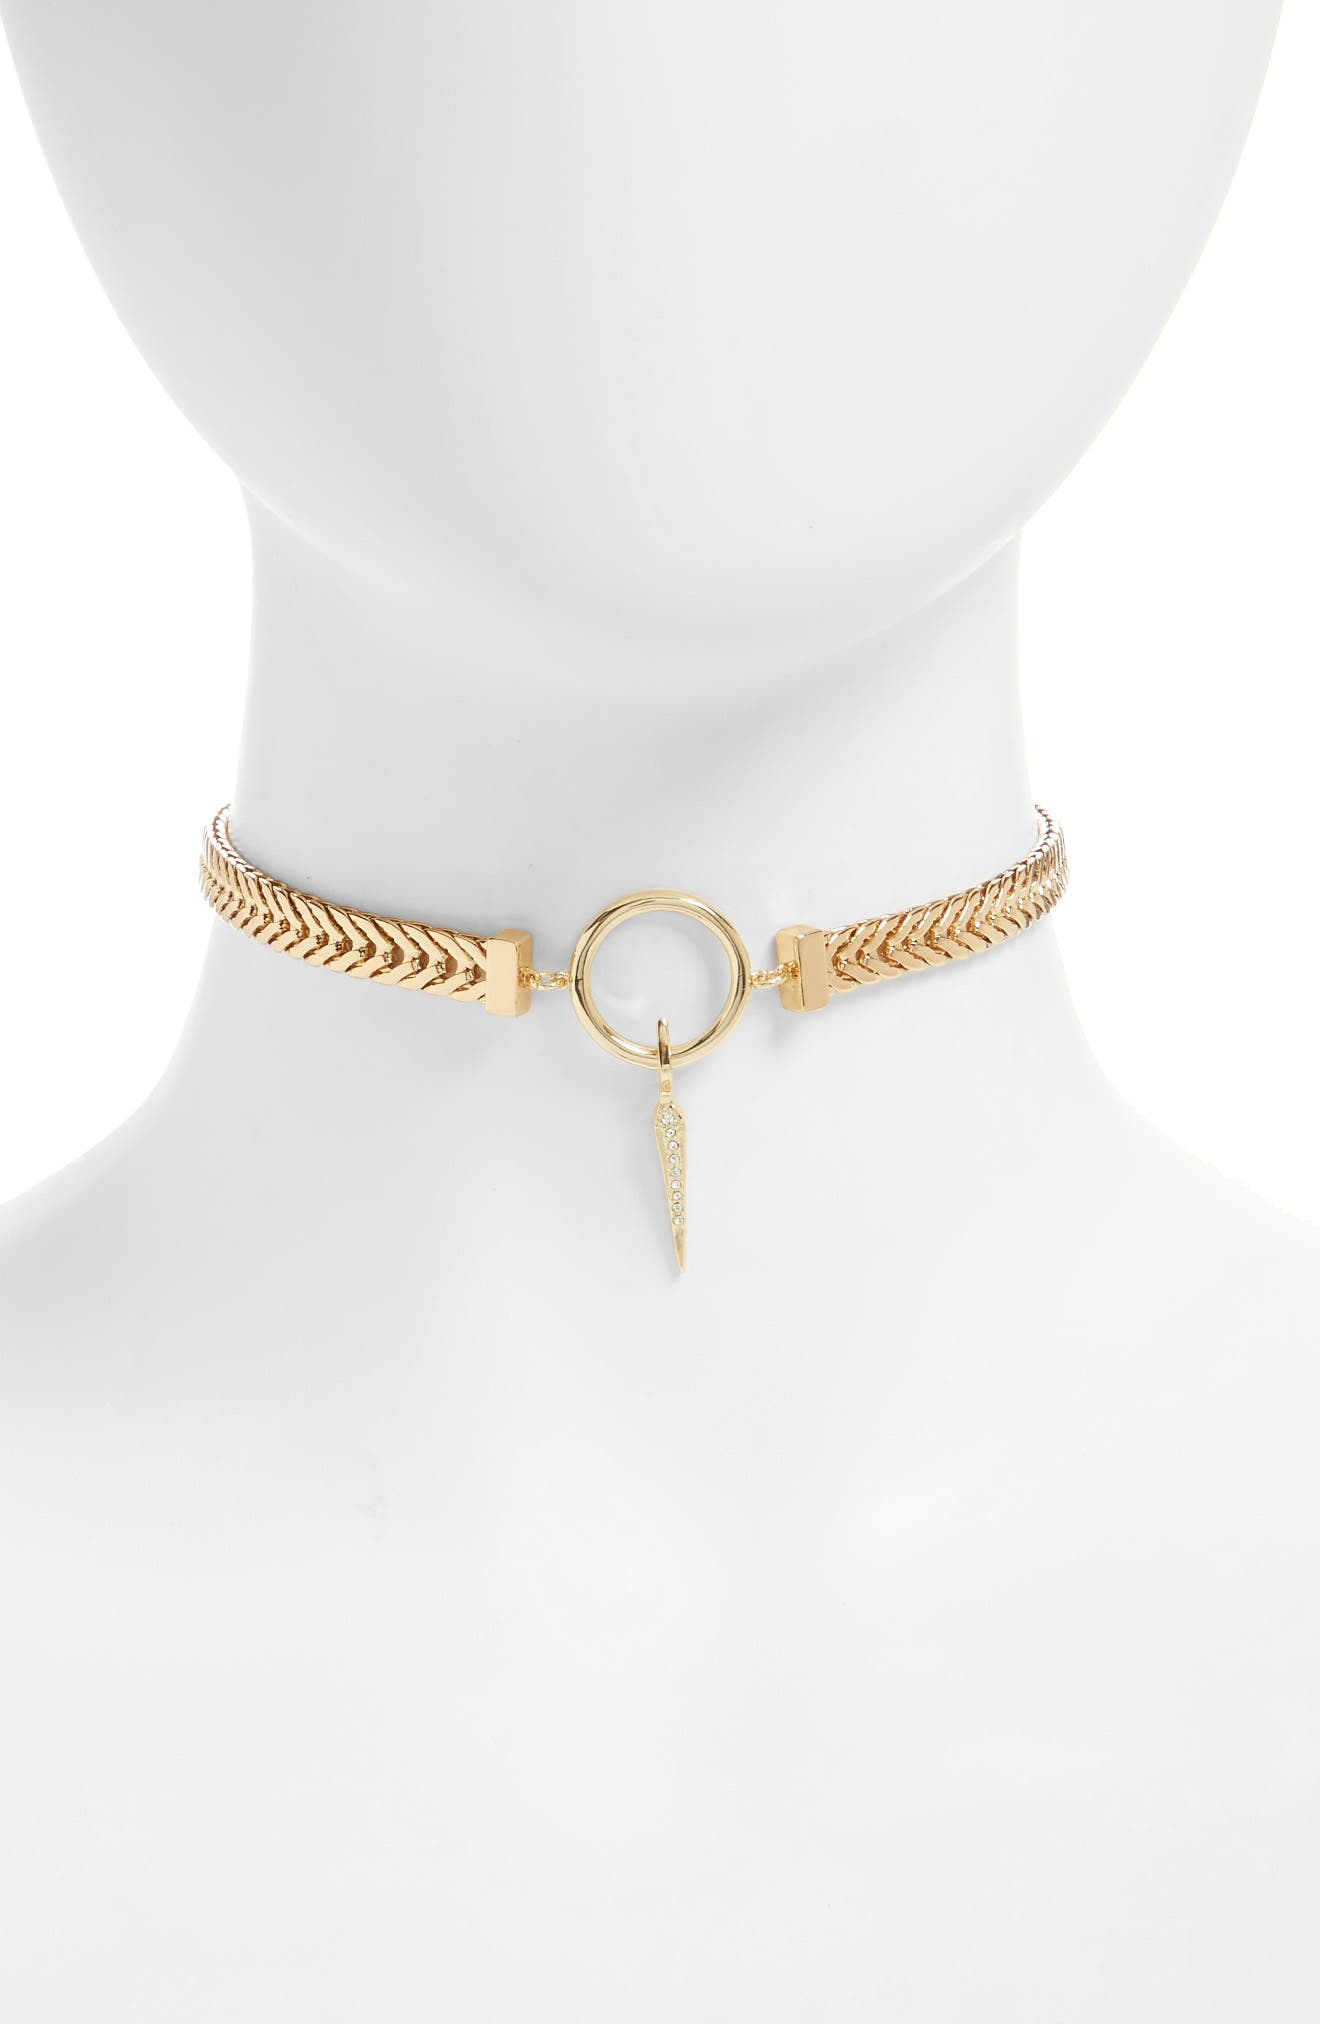 Luv AJ Hanging Spike Choker Necklace